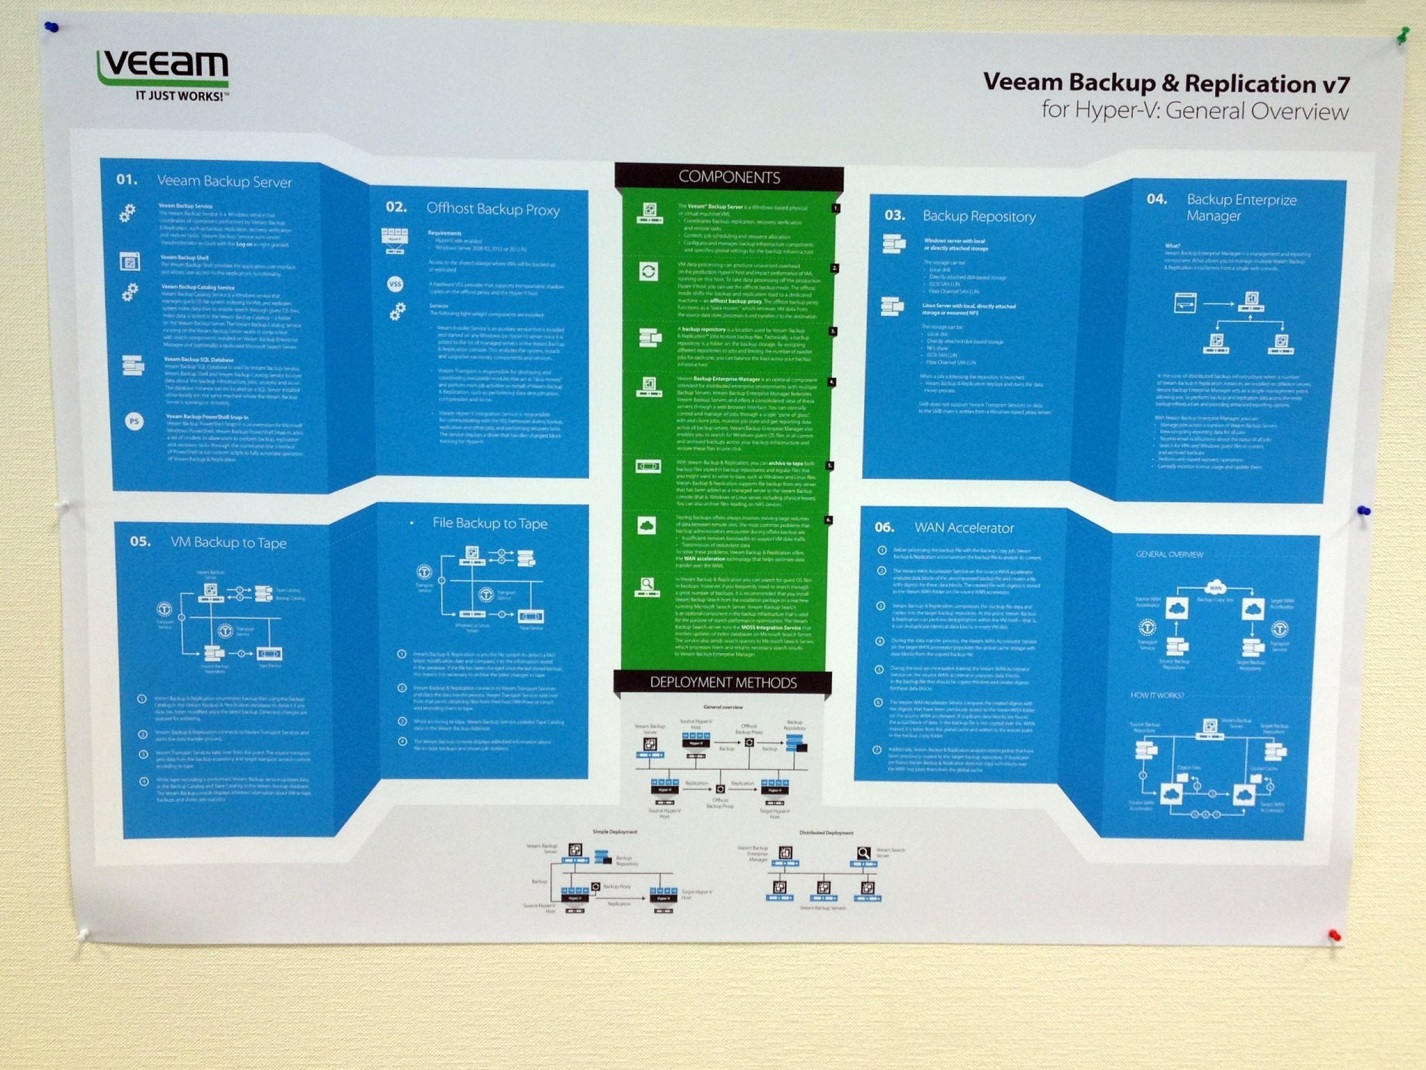 Poster: Veeam Backup & Replication for Hyper-V – General Overview